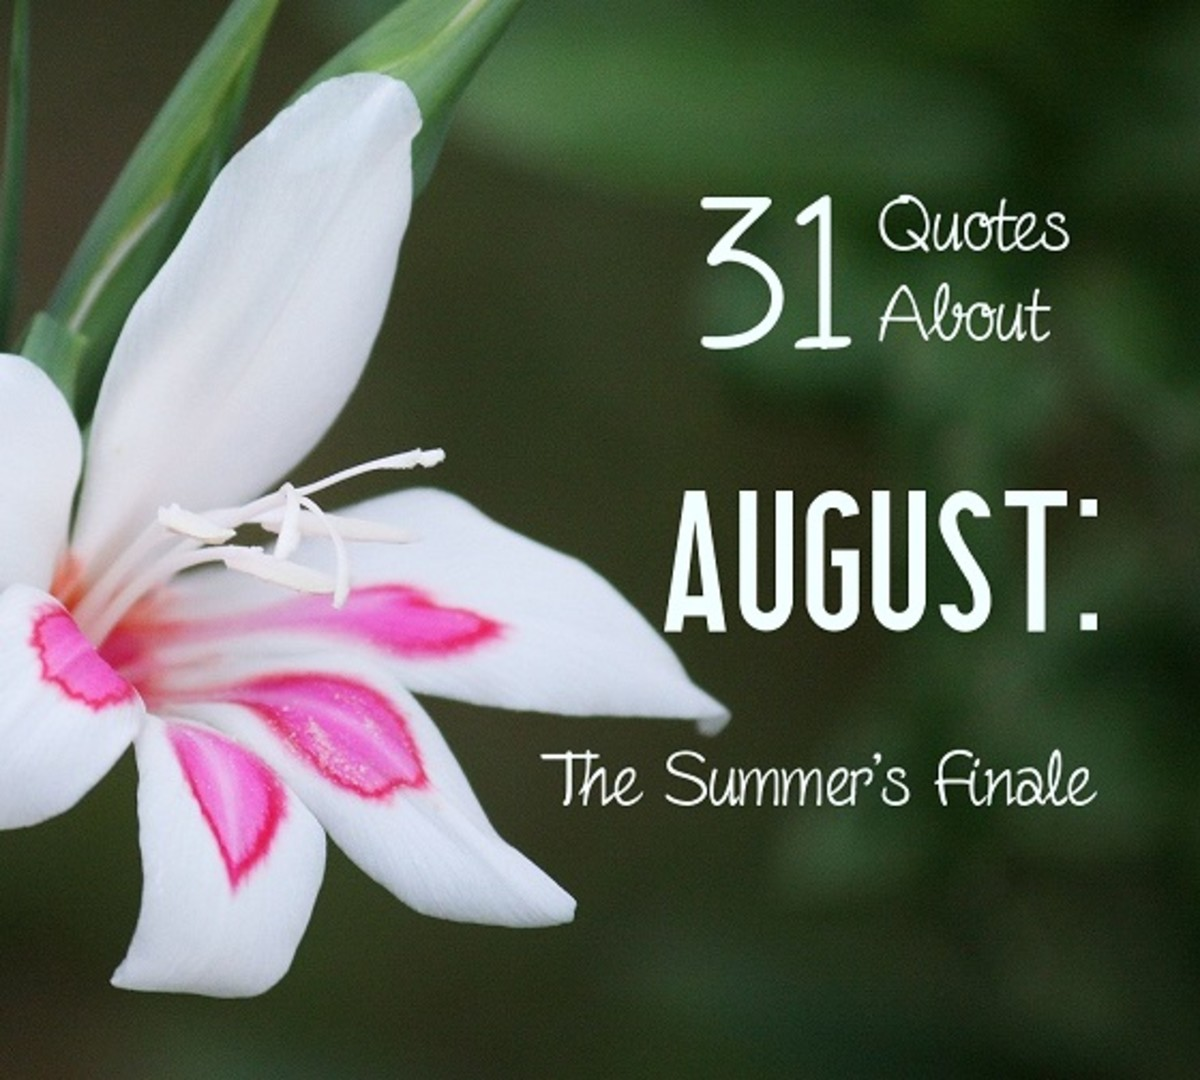 31 Quotes About August: The Summer's Finale